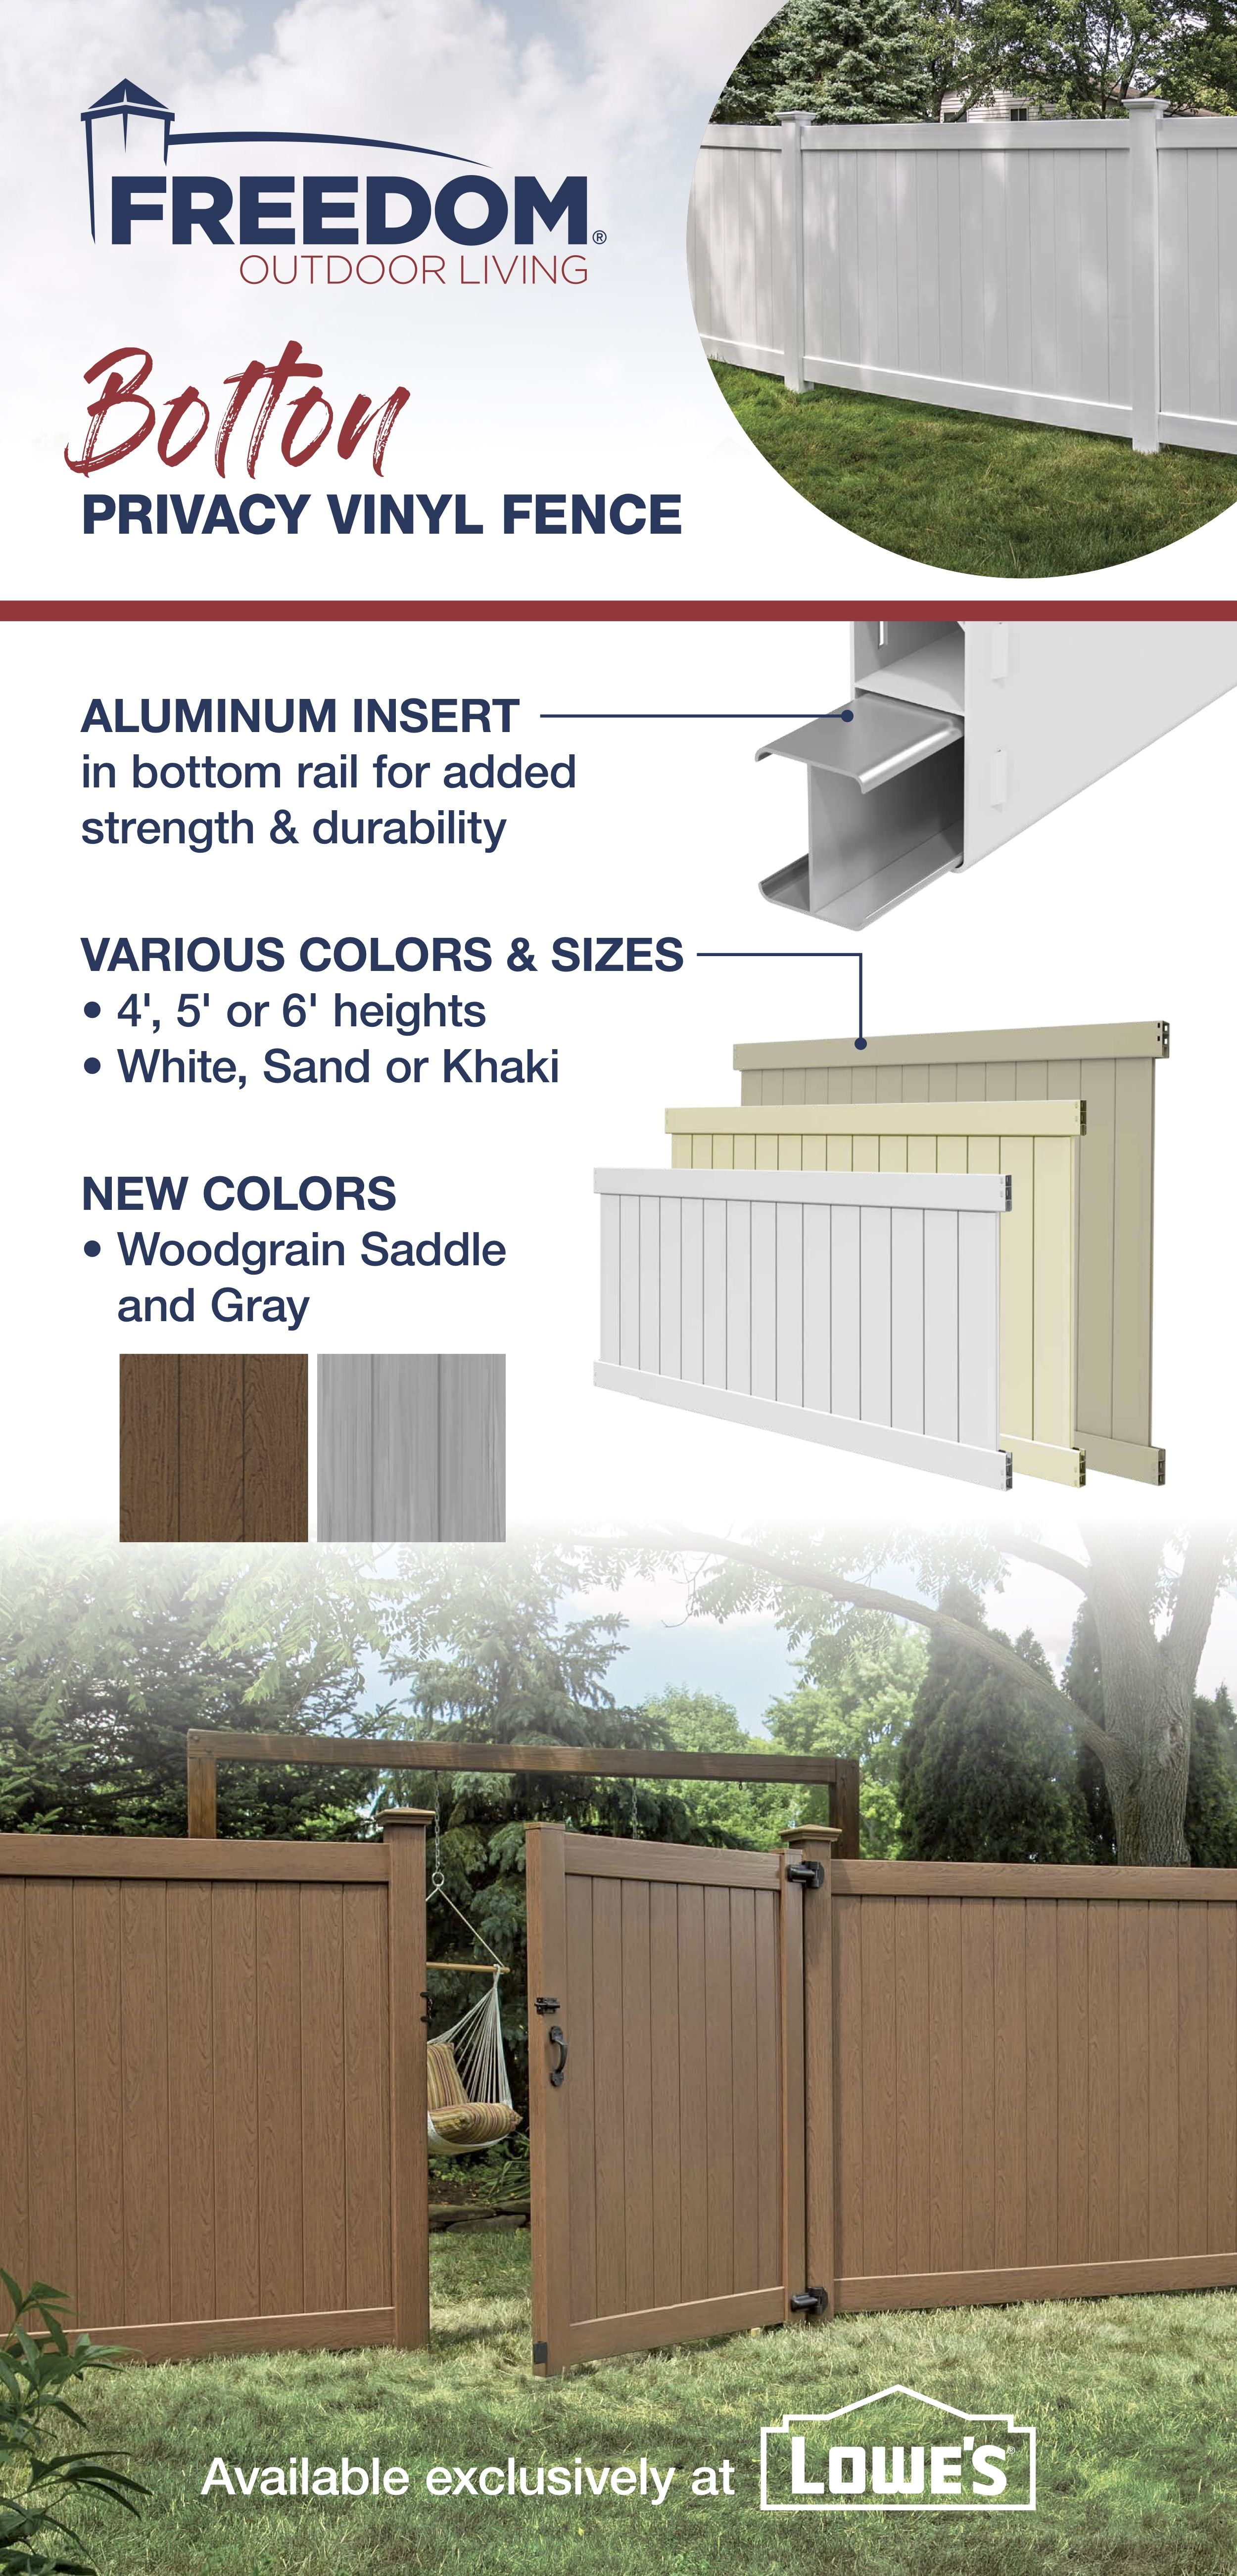 Bolton 6x8 Vinyl Privacy Fence Kit Vinyl Fence Freedom Outdoor Living For Lowes Vinyl Privacy Fence Vinyl Fence Vinyl Fence Colors